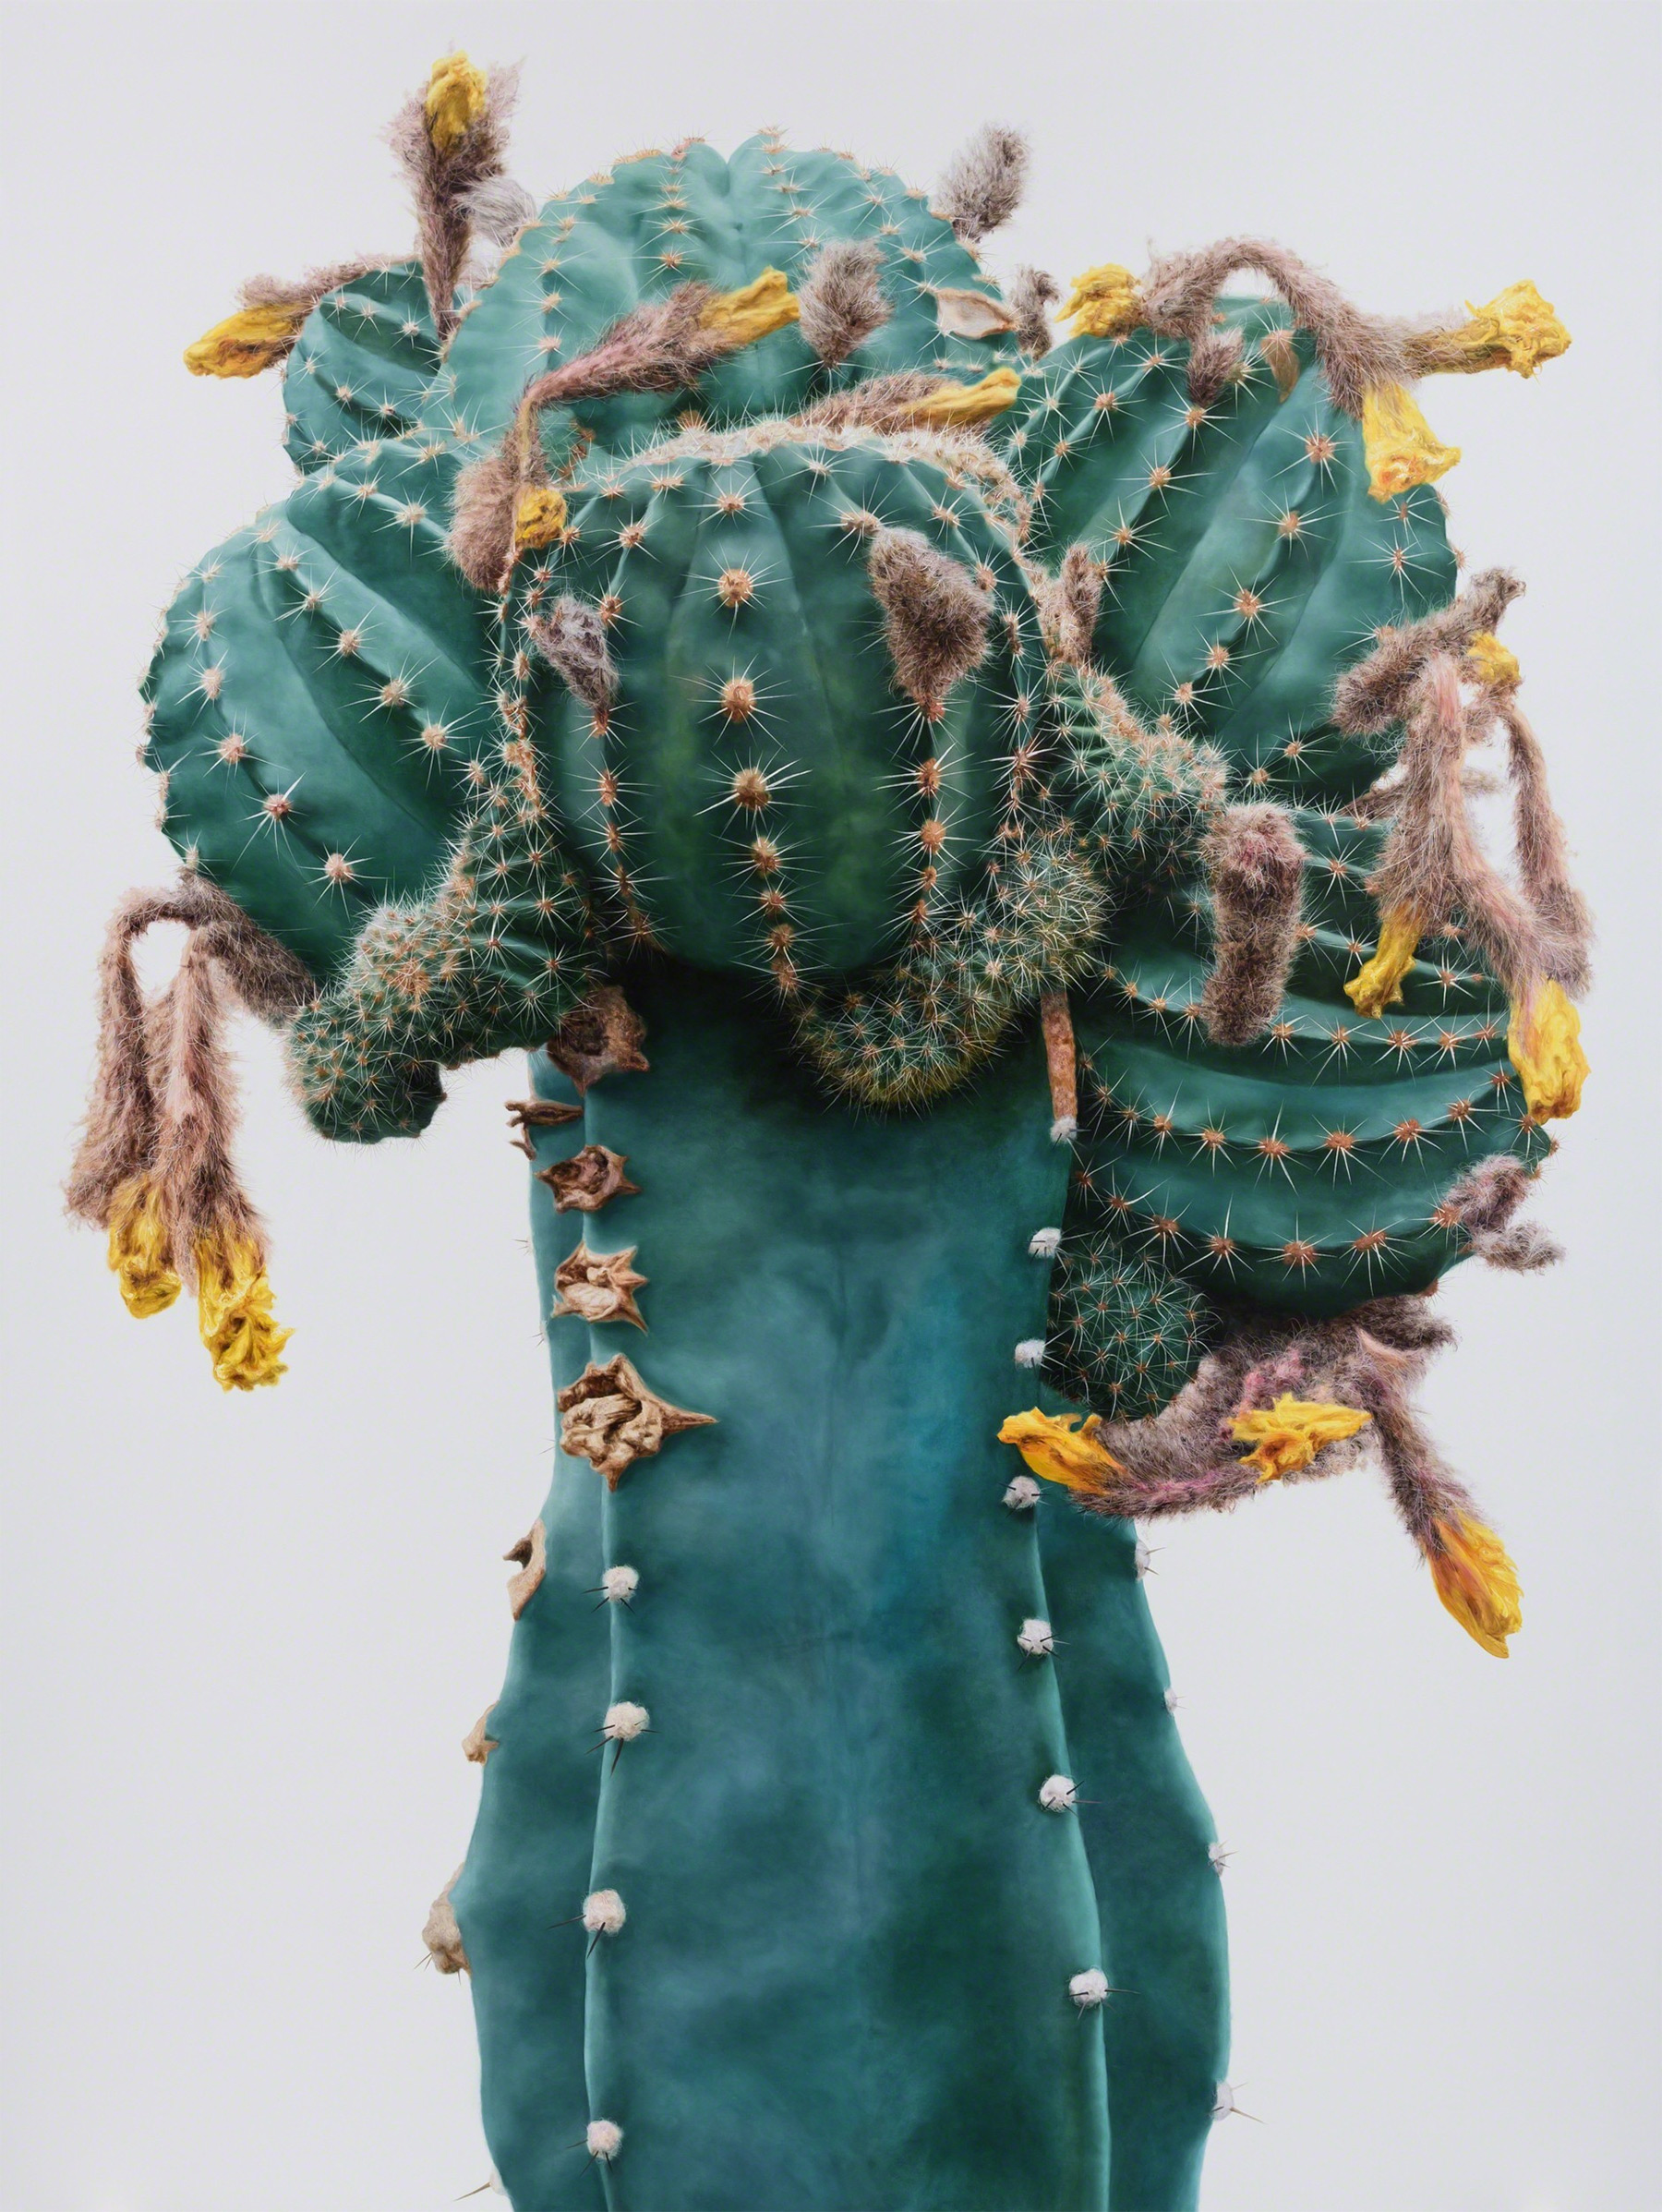 Cactus No. 93 , 2015. Oil on canvas. Courtesy Johyun Gallery.